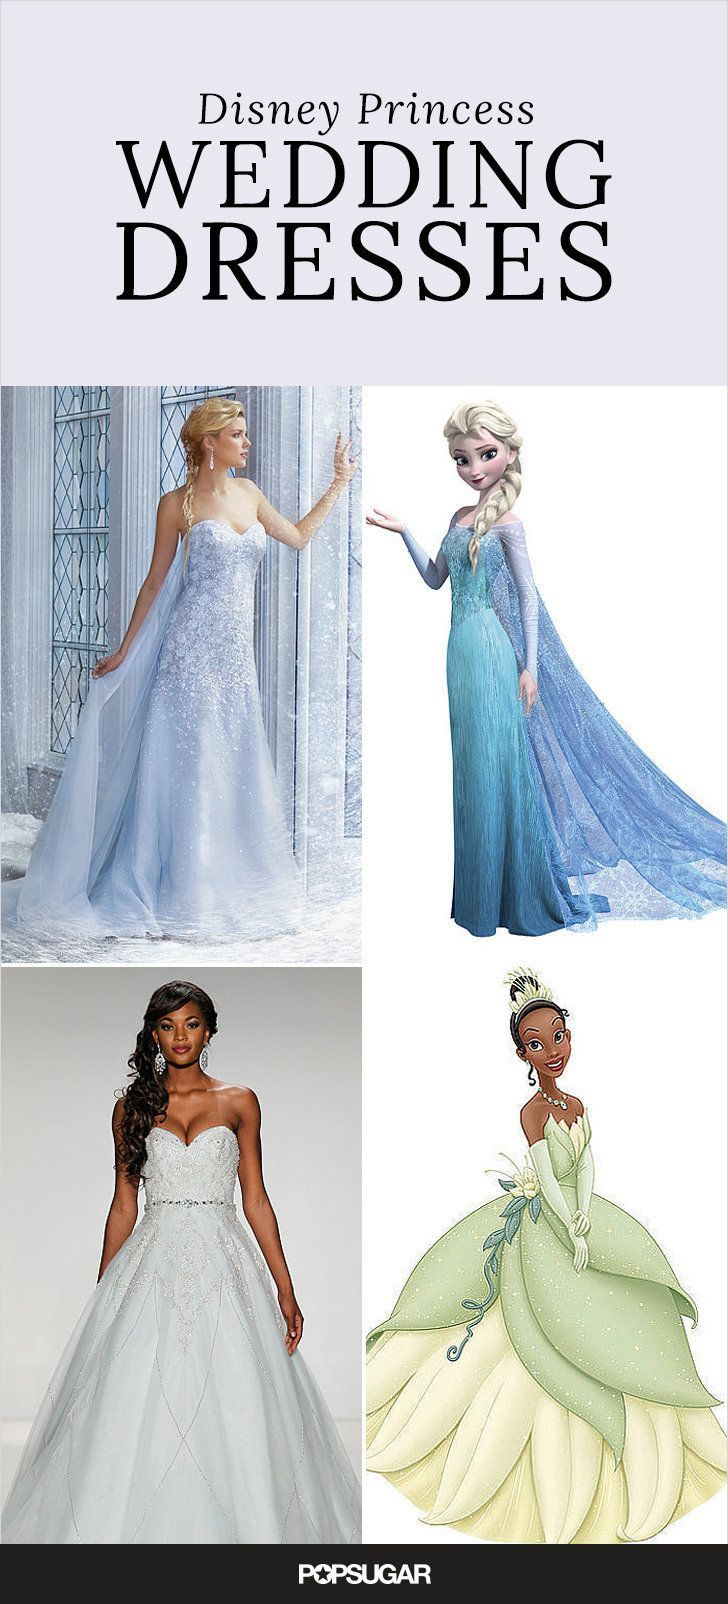 Best 10 princess wedding themes ideas on pinterest princess best 10 princess wedding themes ideas on pinterest princess wedding fairytale wedding themes and wedding theme design ombrellifo Image collections